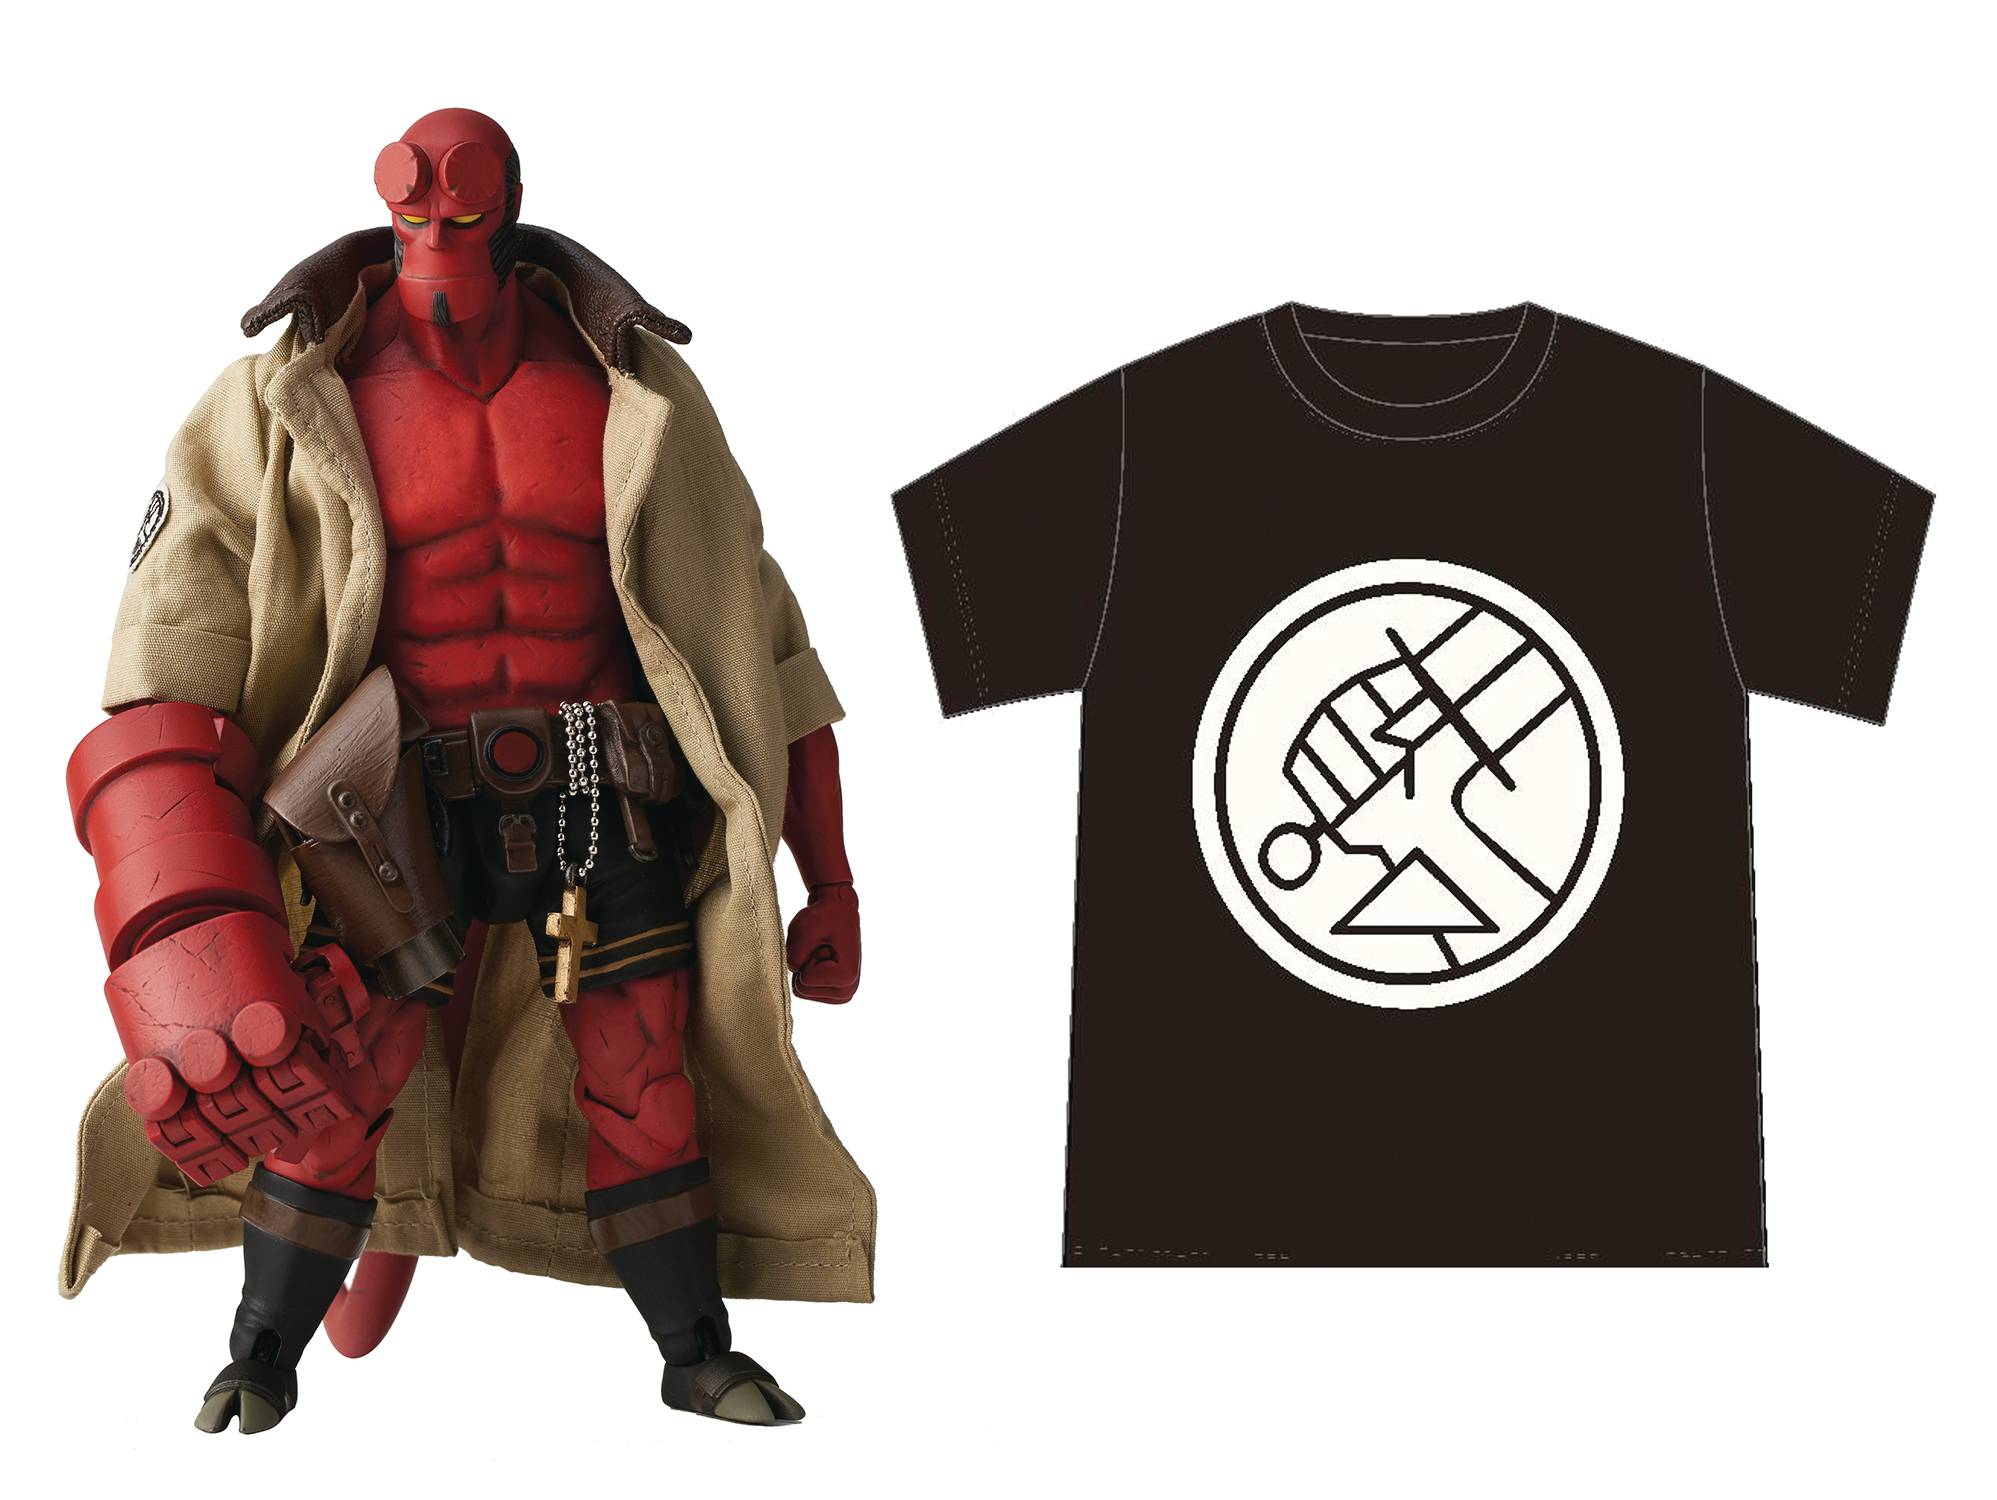 HELLBOY BPRD SHIRT VERSION PX 1/12 SCALE ACTION FIGURE BY 1000 TOYS